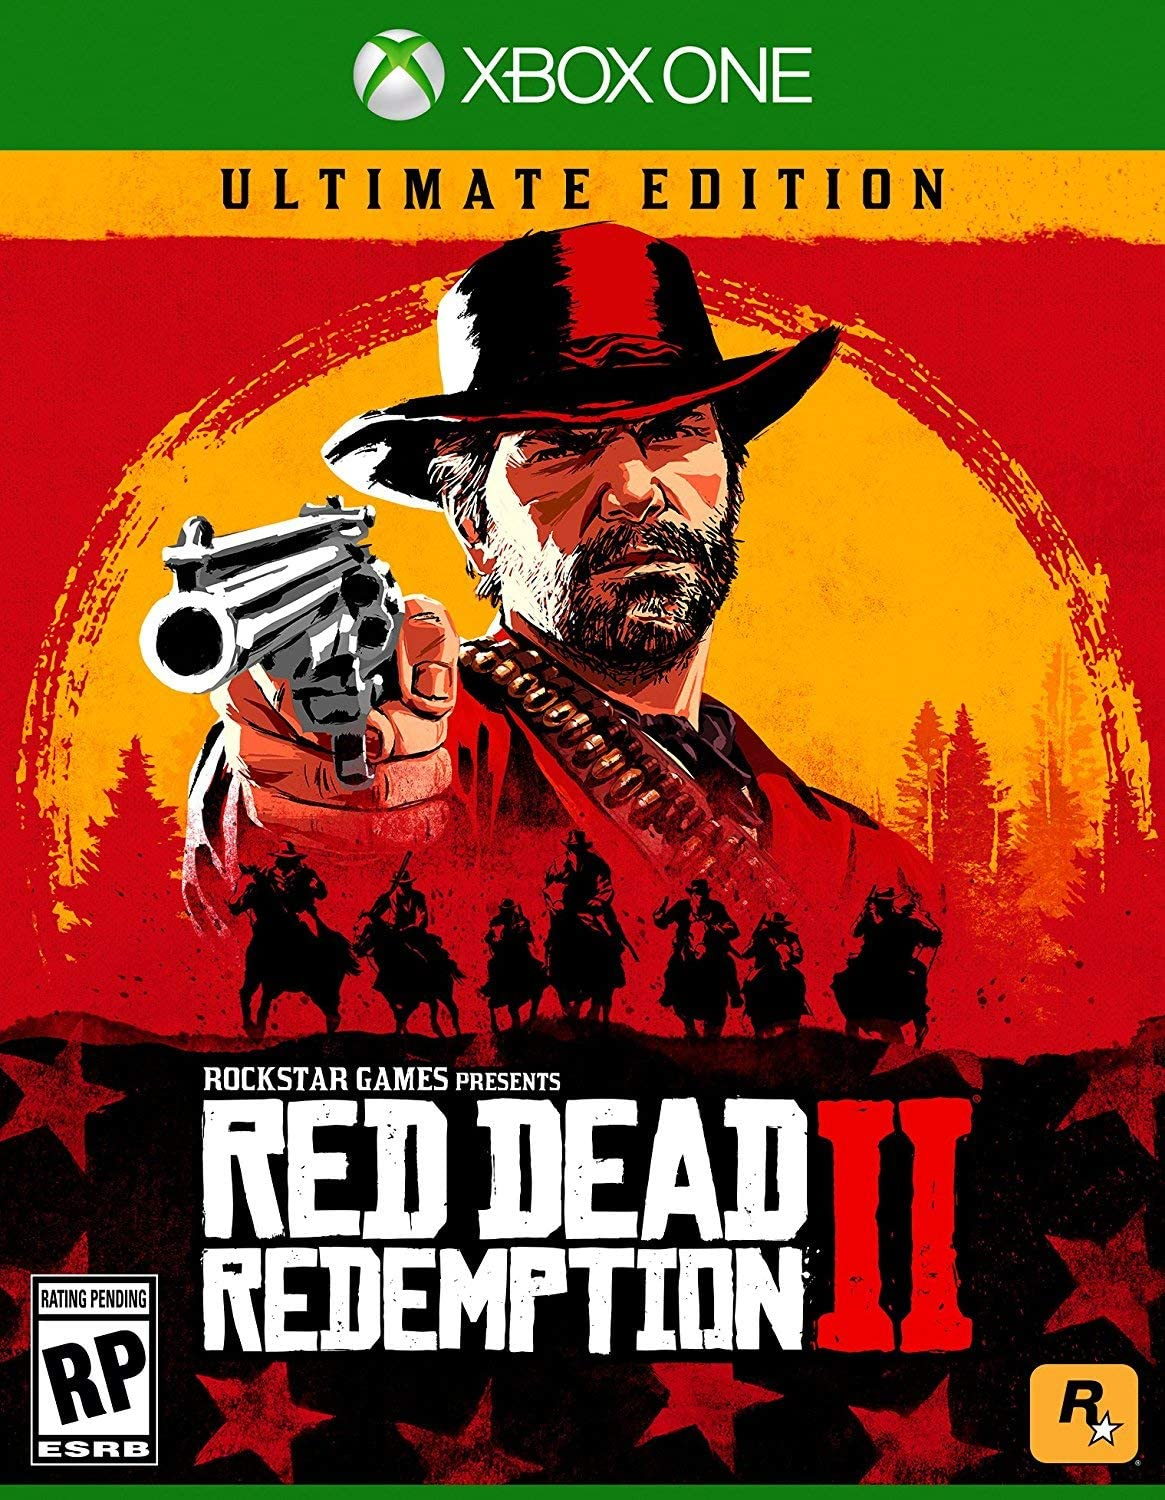 Amazon.com: Red Dead Redemption 2 Ultimate Edition- Xbox One: Video Games